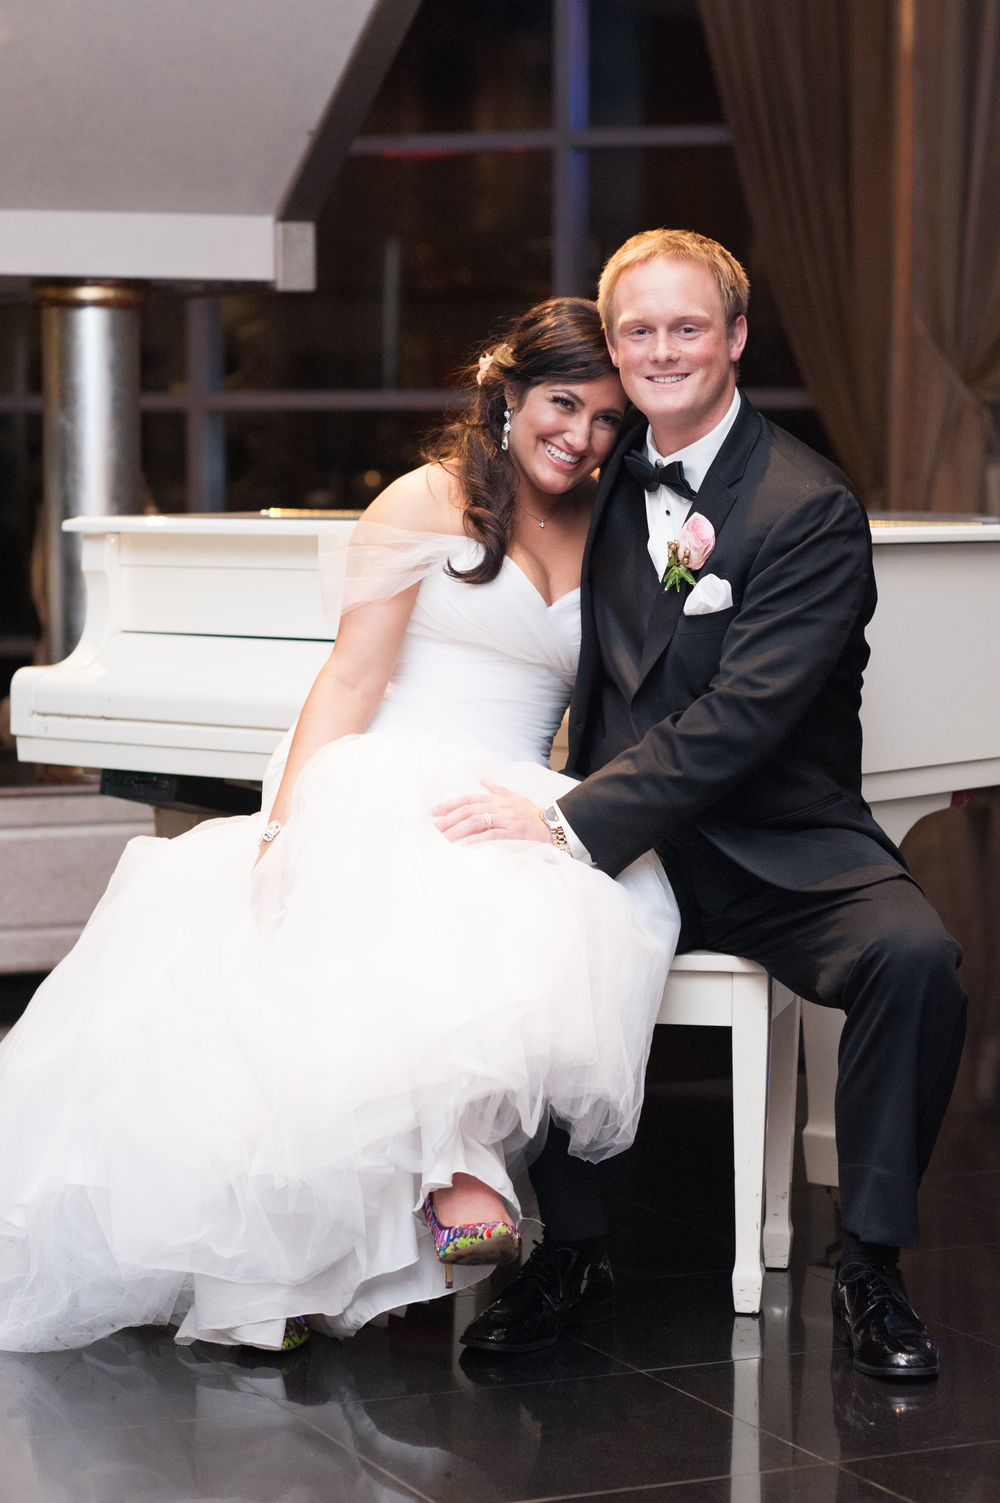 TaylorWedding2015-9976.jpg